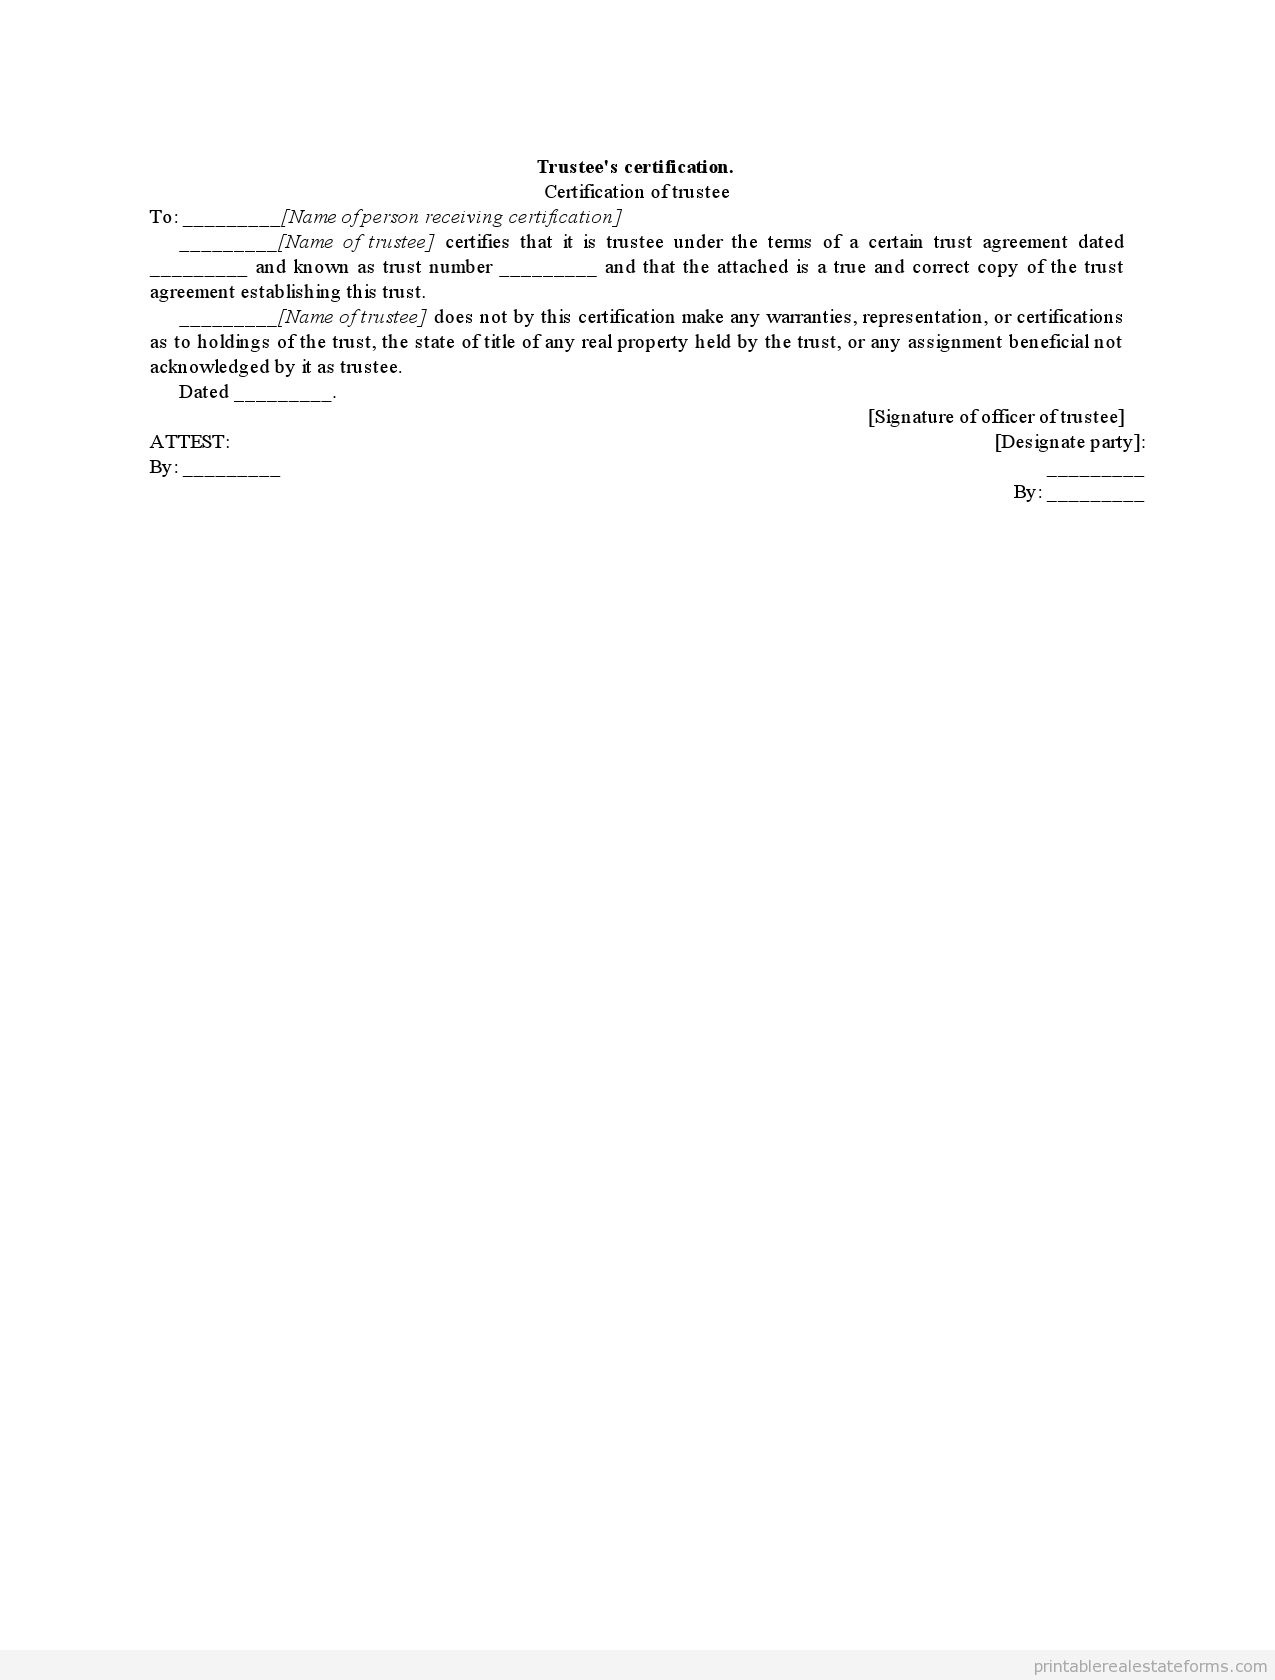 Sample Printable Trustees Certification Form  Sample Real Estate